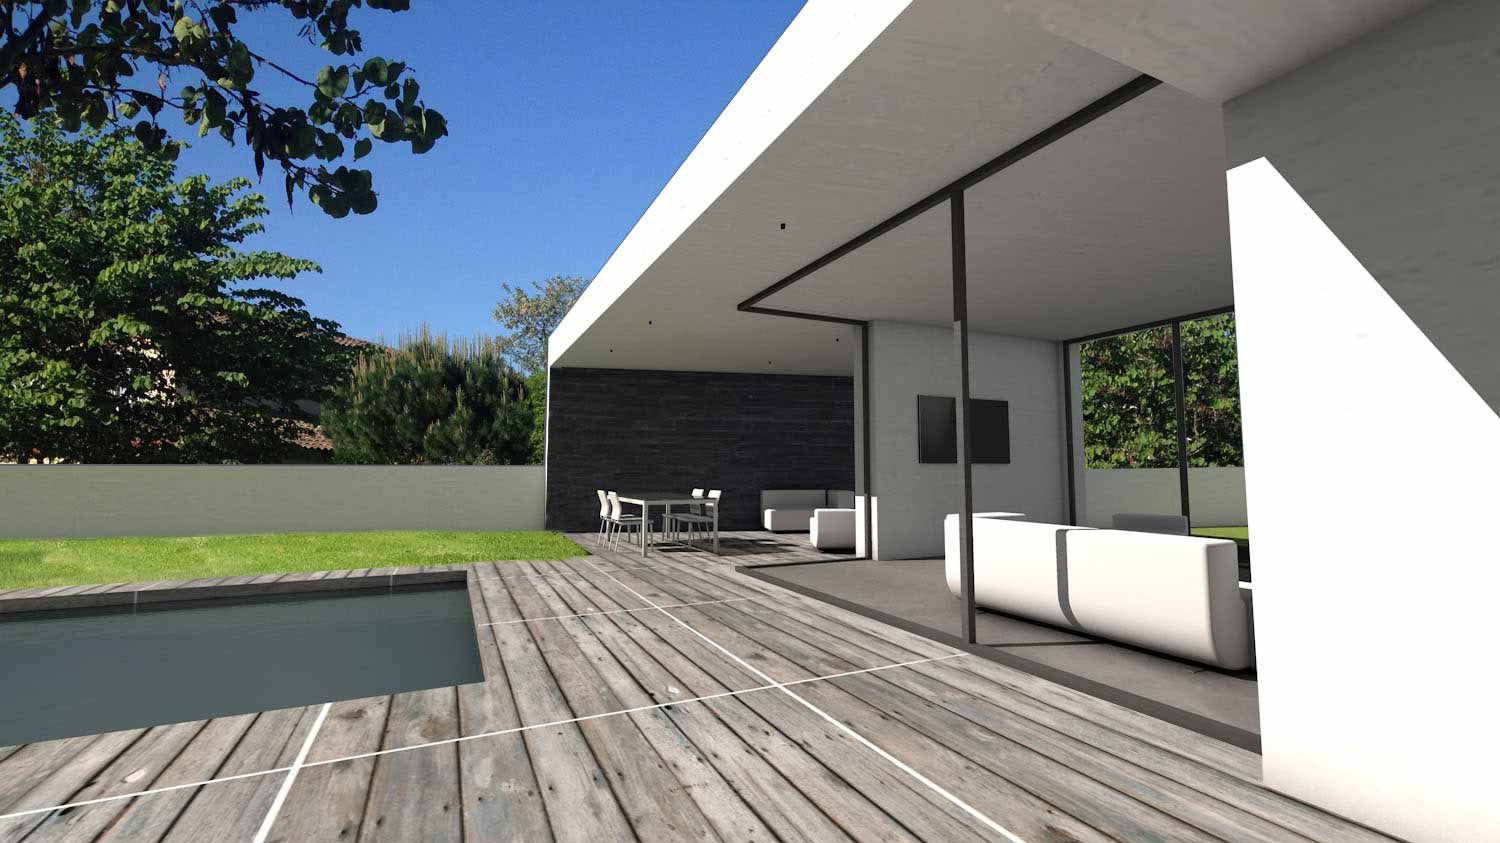 atelier d 39 architecture sc nario maison contemporaine d On architecture contemporaine